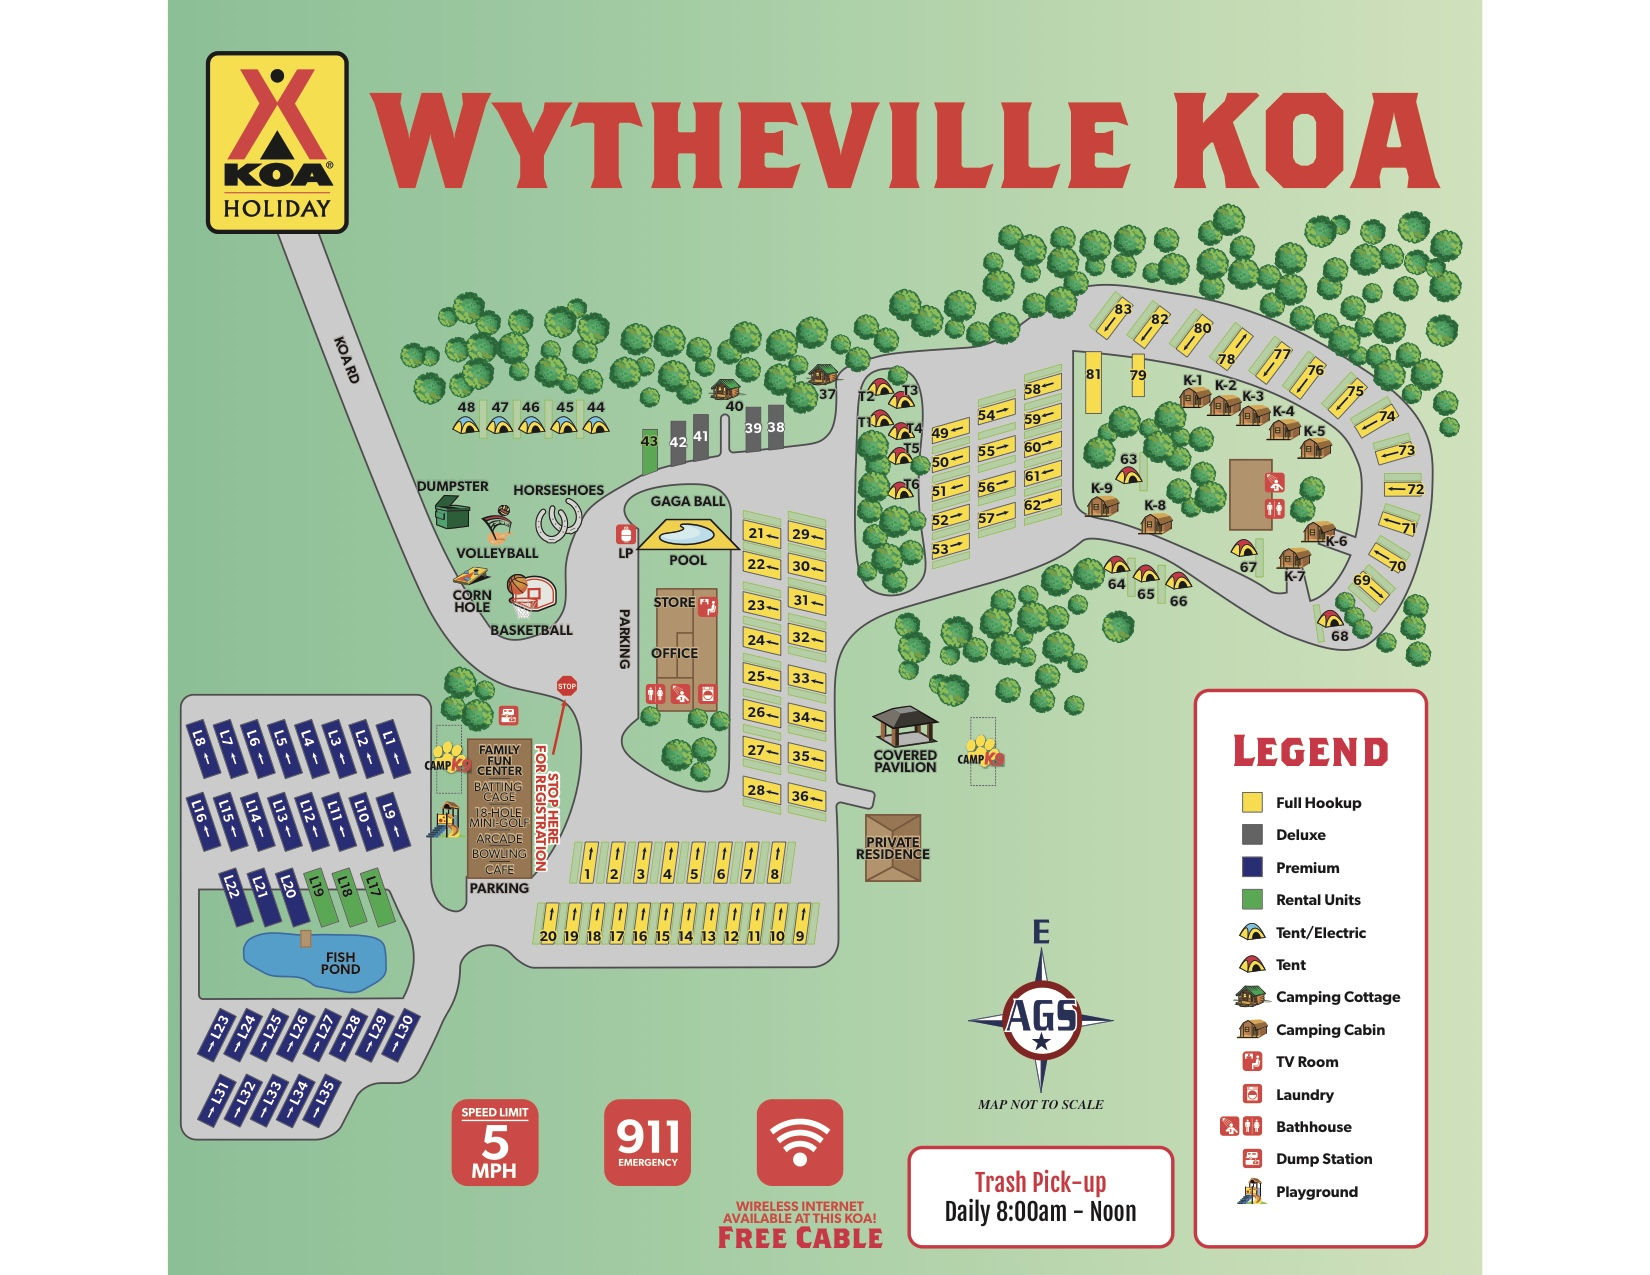 Wytheville, Virginia Campground | Wytheville KOA on fll map, slc map, route map, coarsegold california map, zip code map,